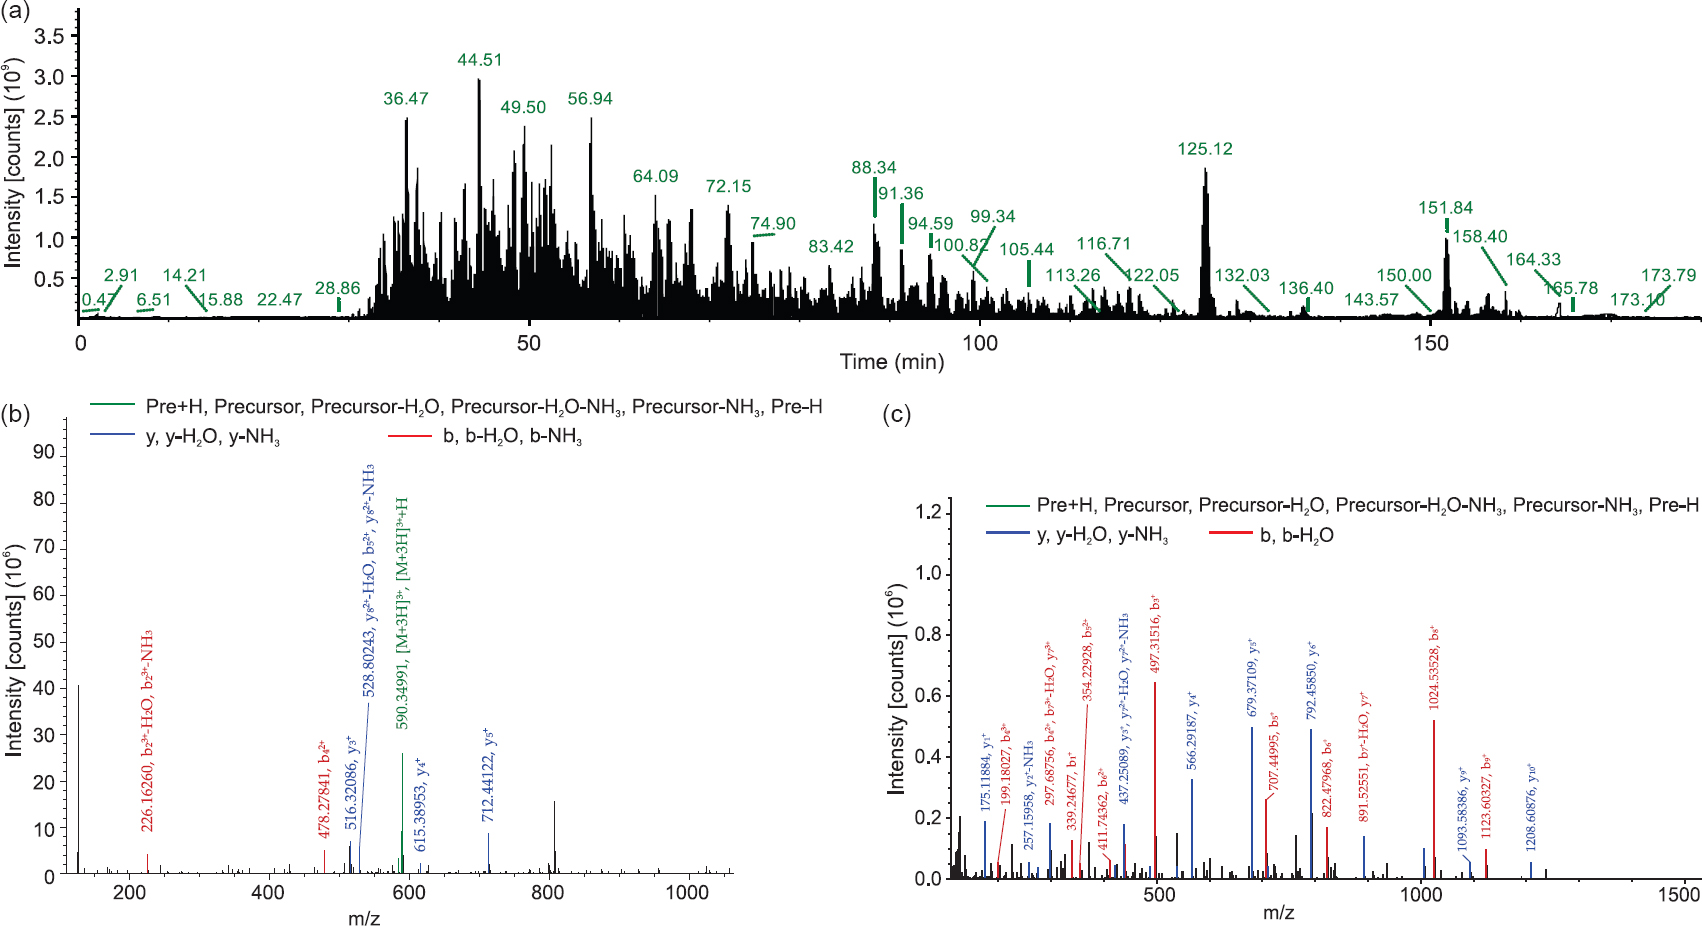 hight resolution of figure 2 tmt based annotation of salivary gland proteins of an culicifacies between susceptible and refractory species a total ion chromatogram of